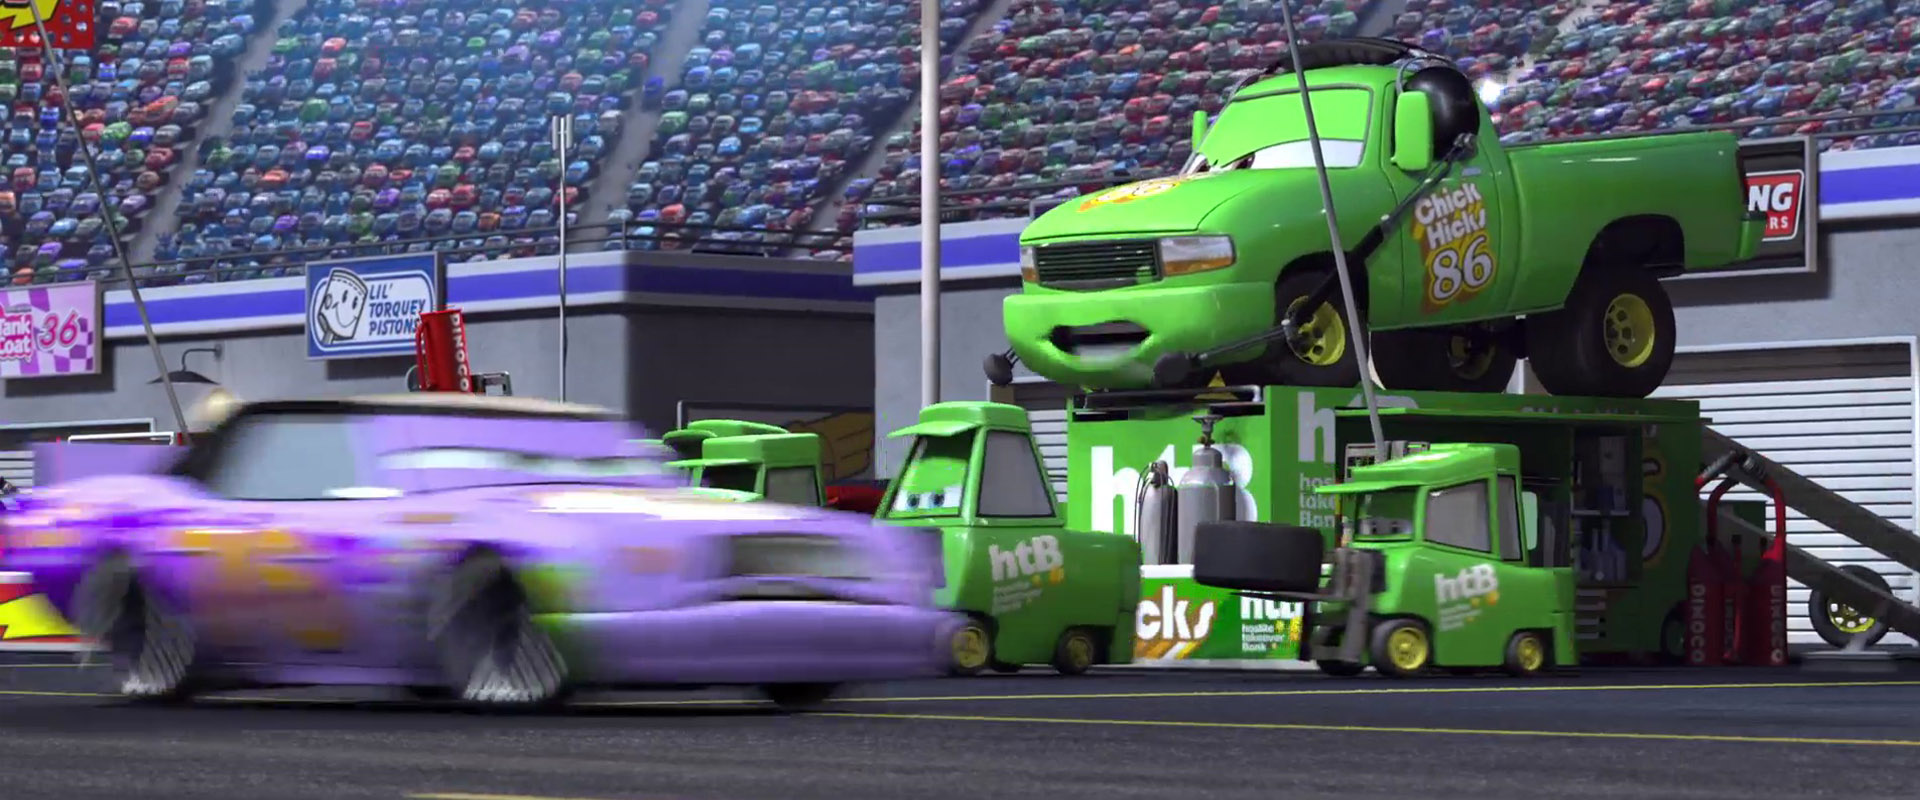 crusty rotor personnage character pixar disney cars